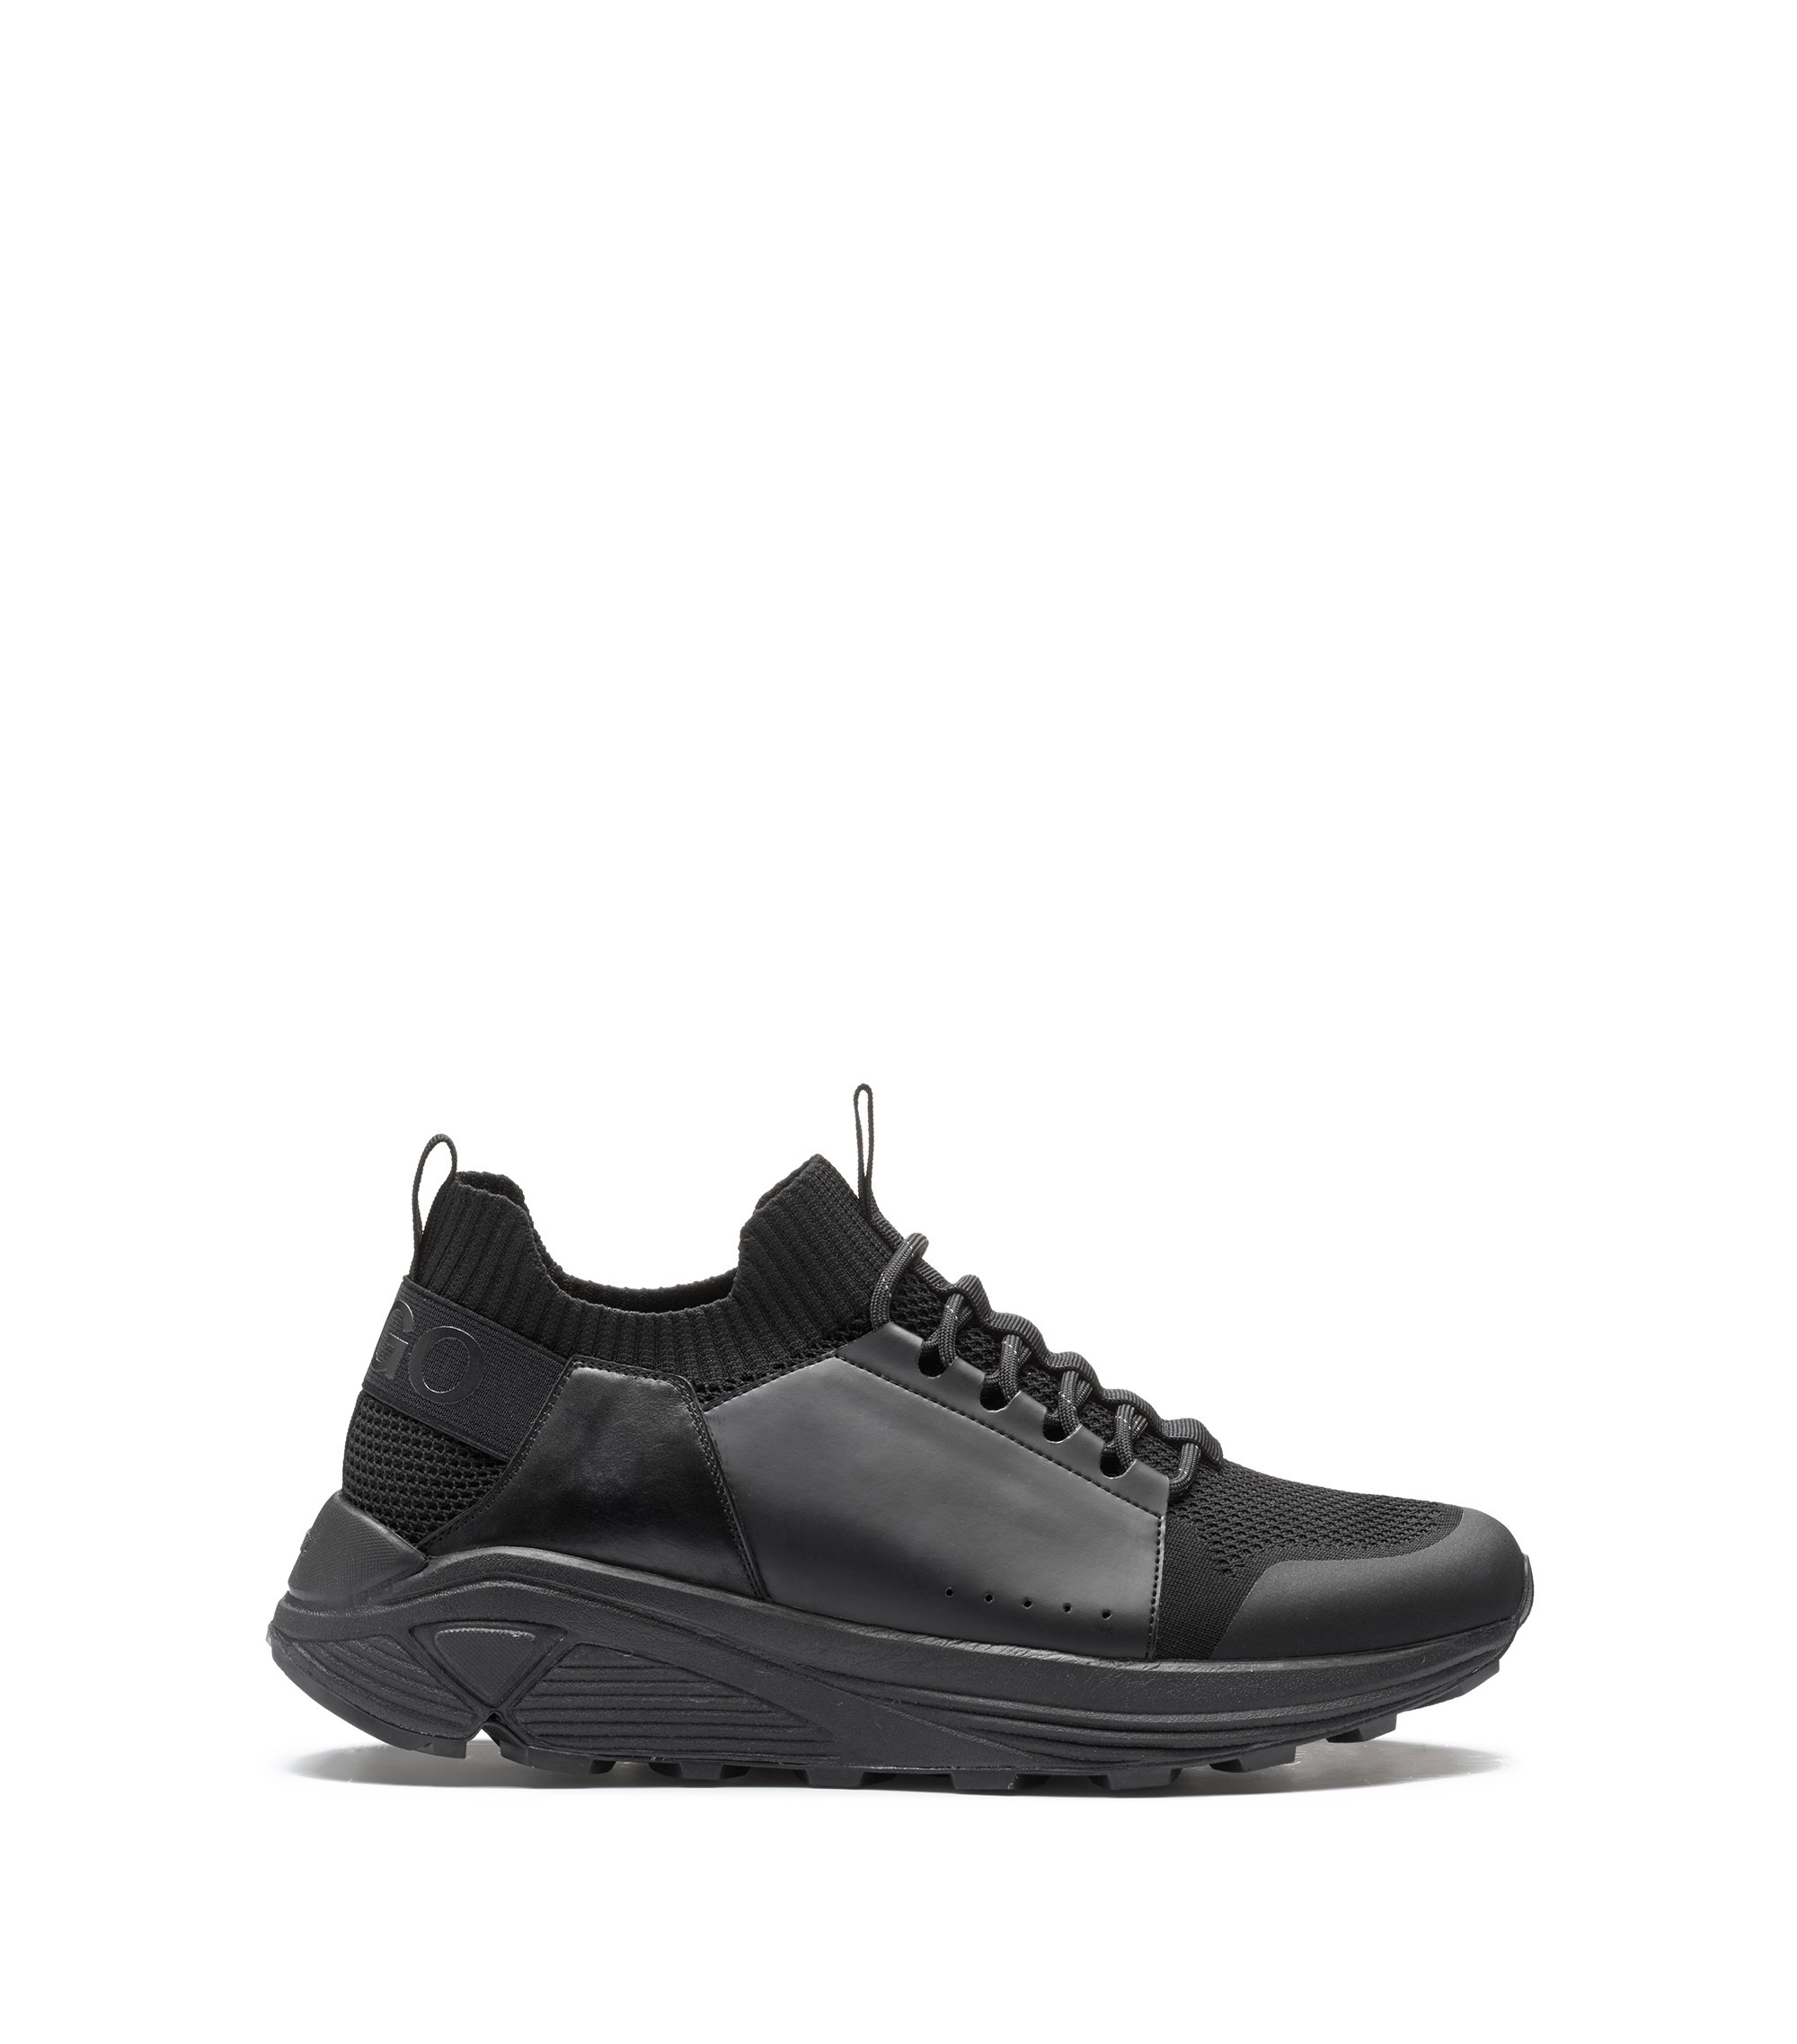 Modern lace-up trainers with thick Vibram sole, Black